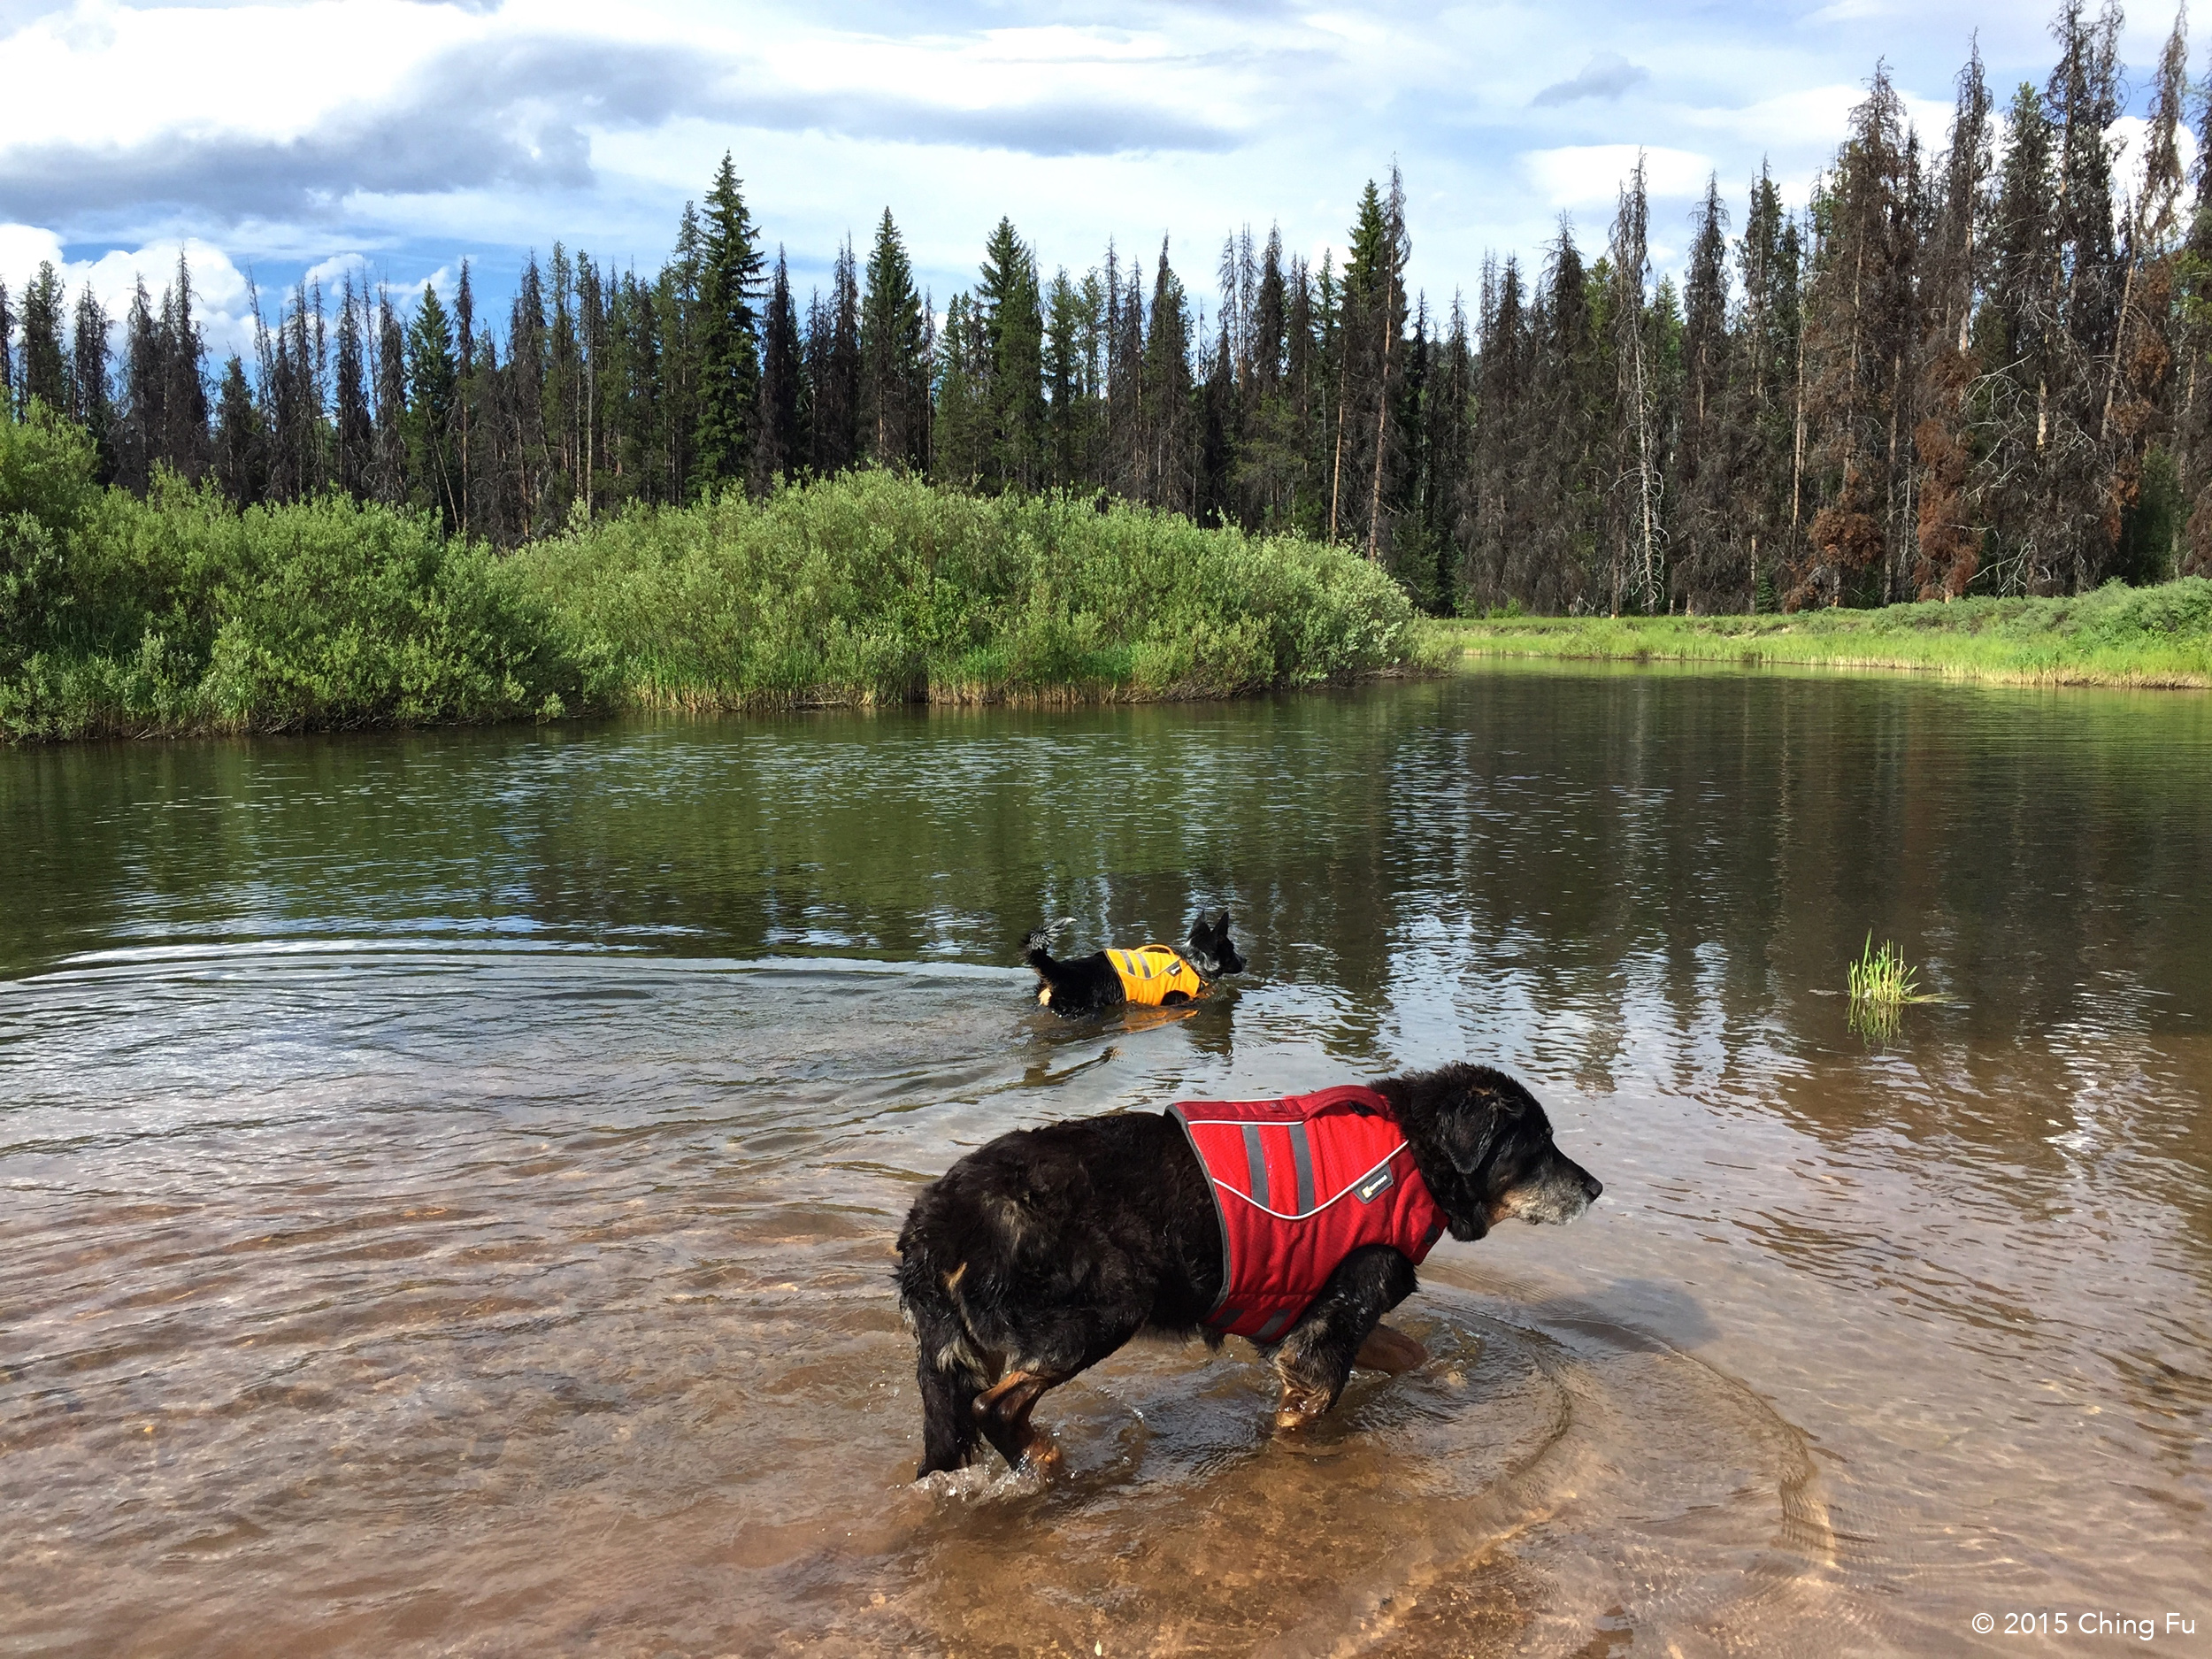 Tybee and Tyki looking adorable in their lifejackets.